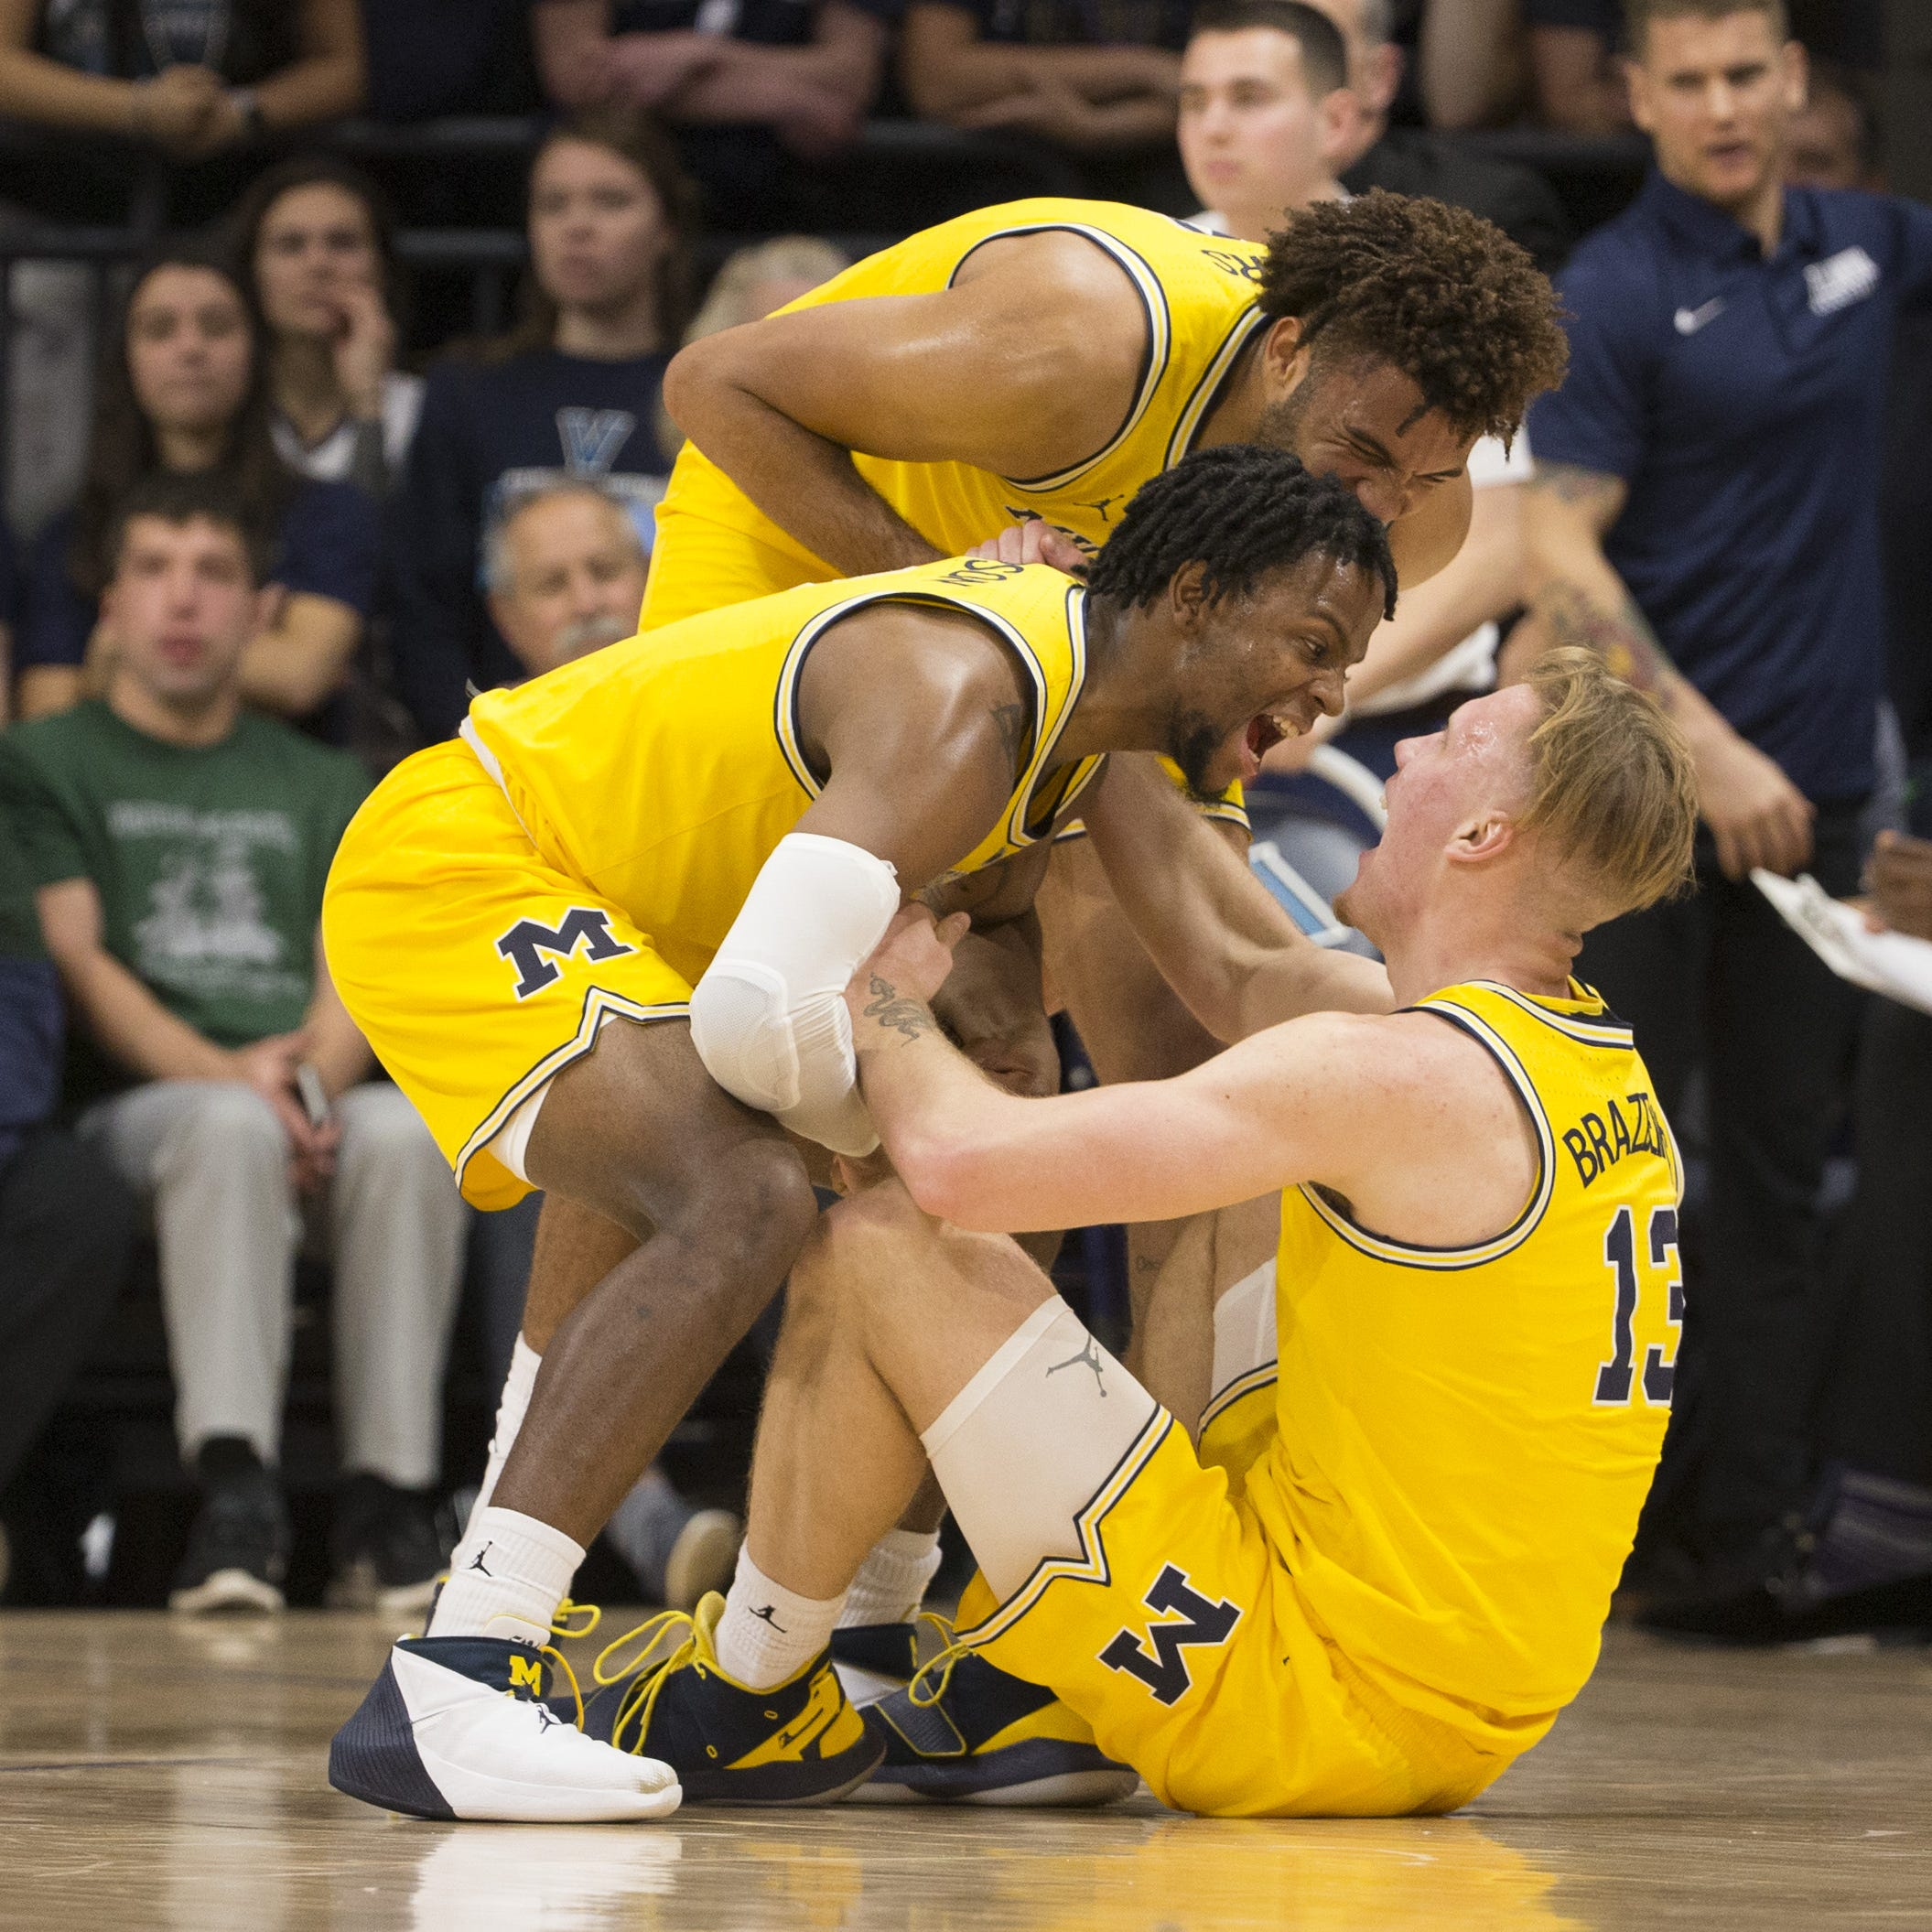 'We just had it': Michigan hammers Villanova in title-game rematch